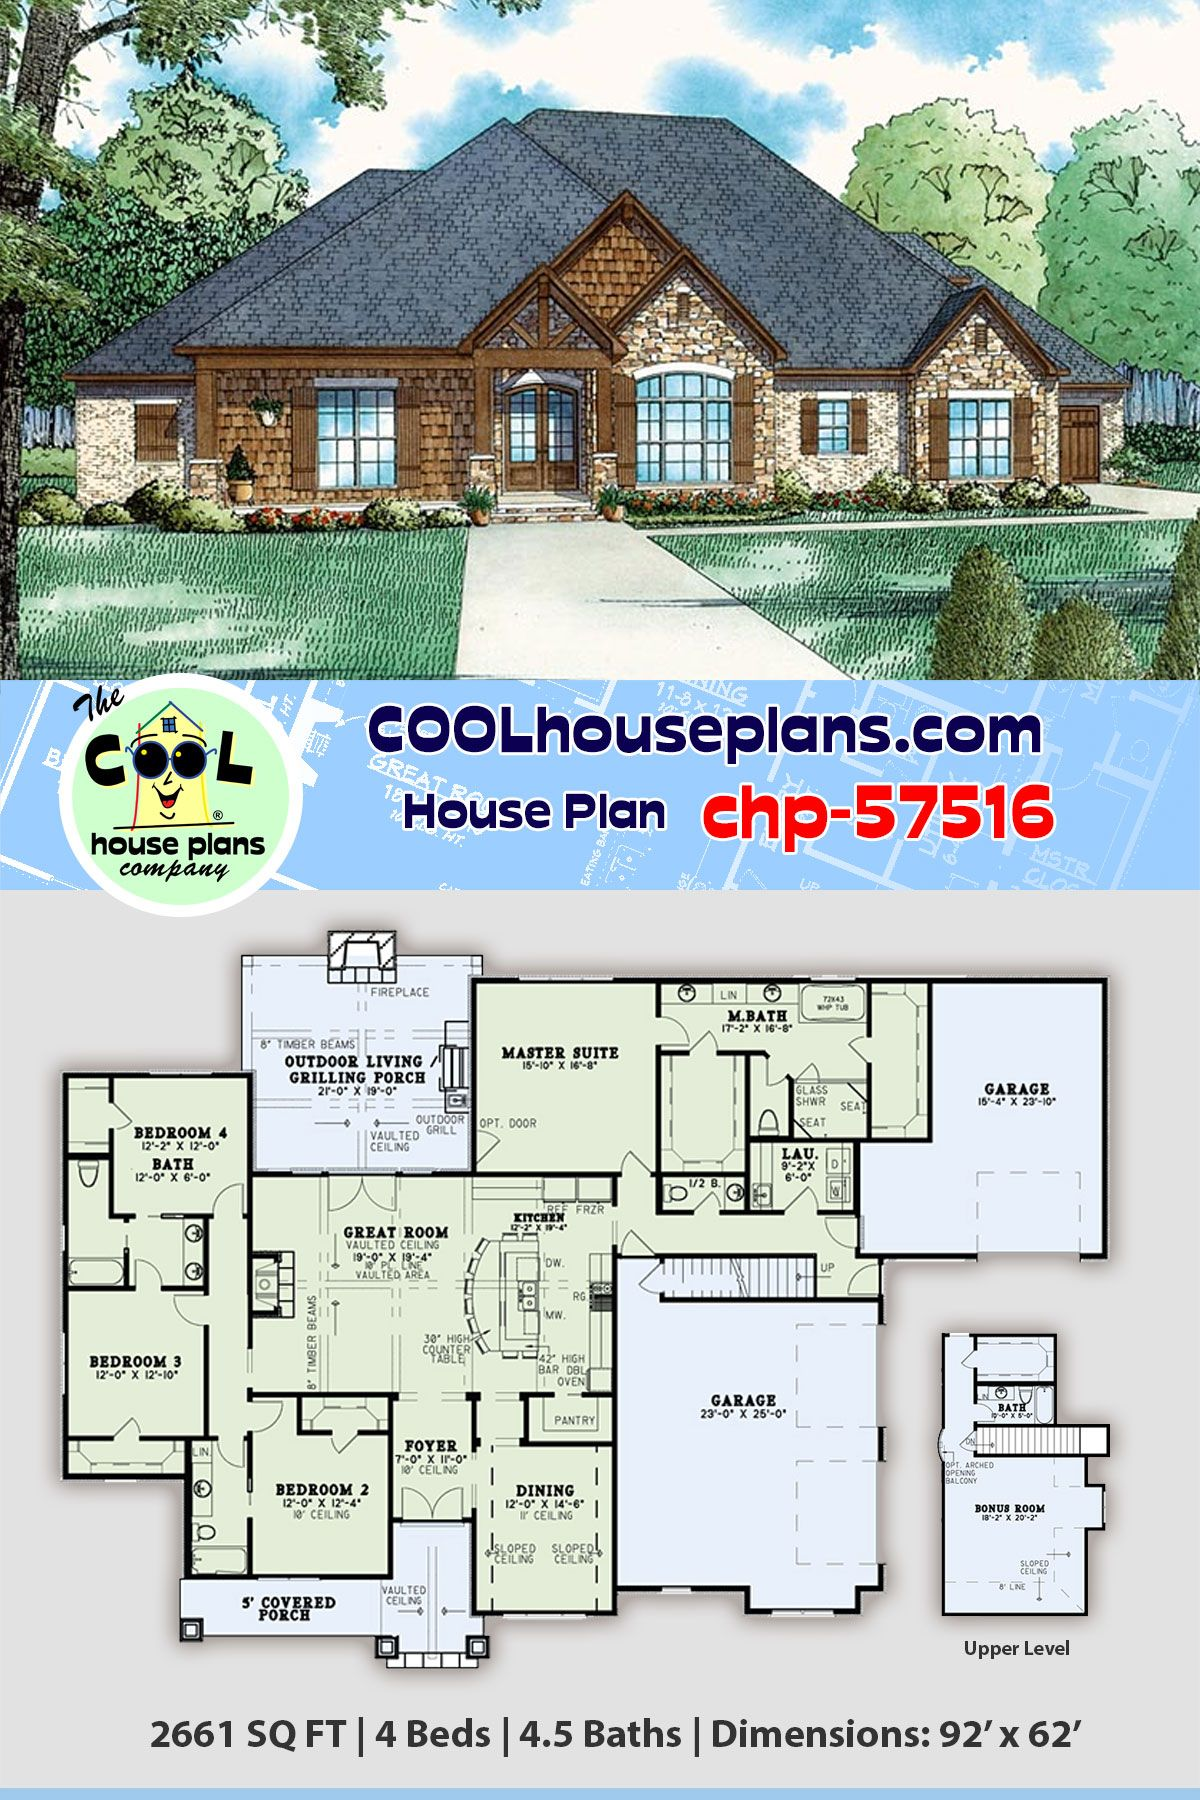 European House Plan Chp 57516 Has 2661 Sq Ft 4 Beds 4 5 Baths And A 3 Car Garage In 2020 House Plans Garage House Plans European House Plan